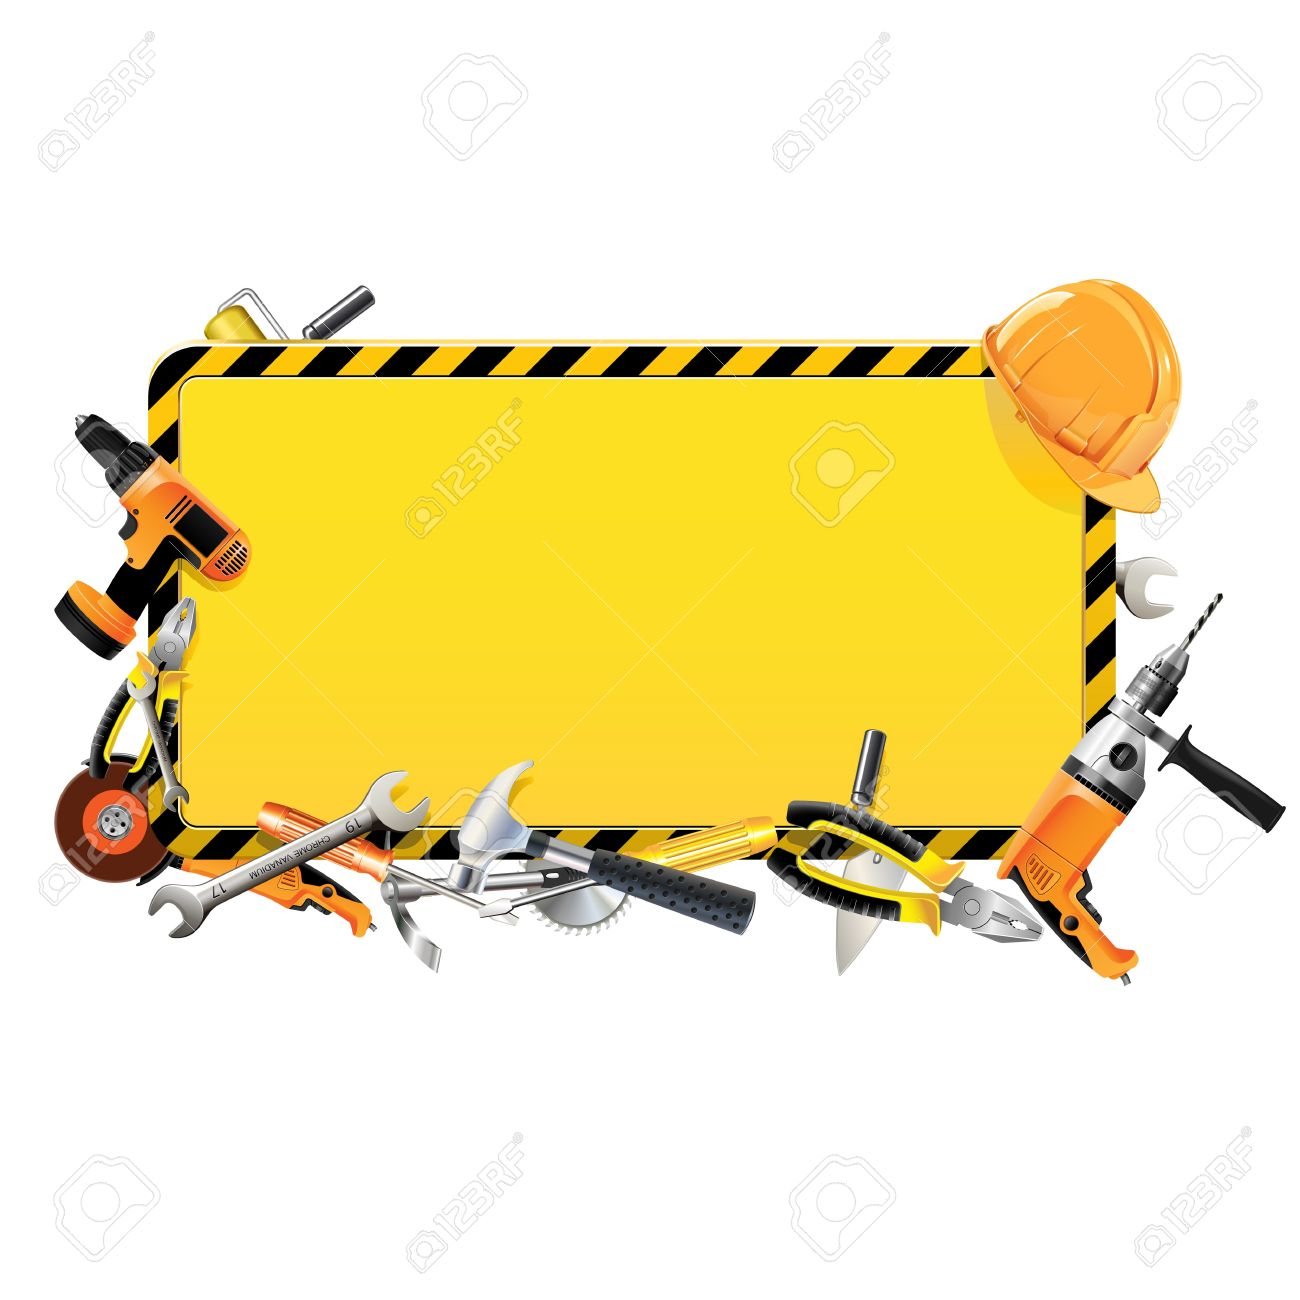 Construction Tool Clipart.